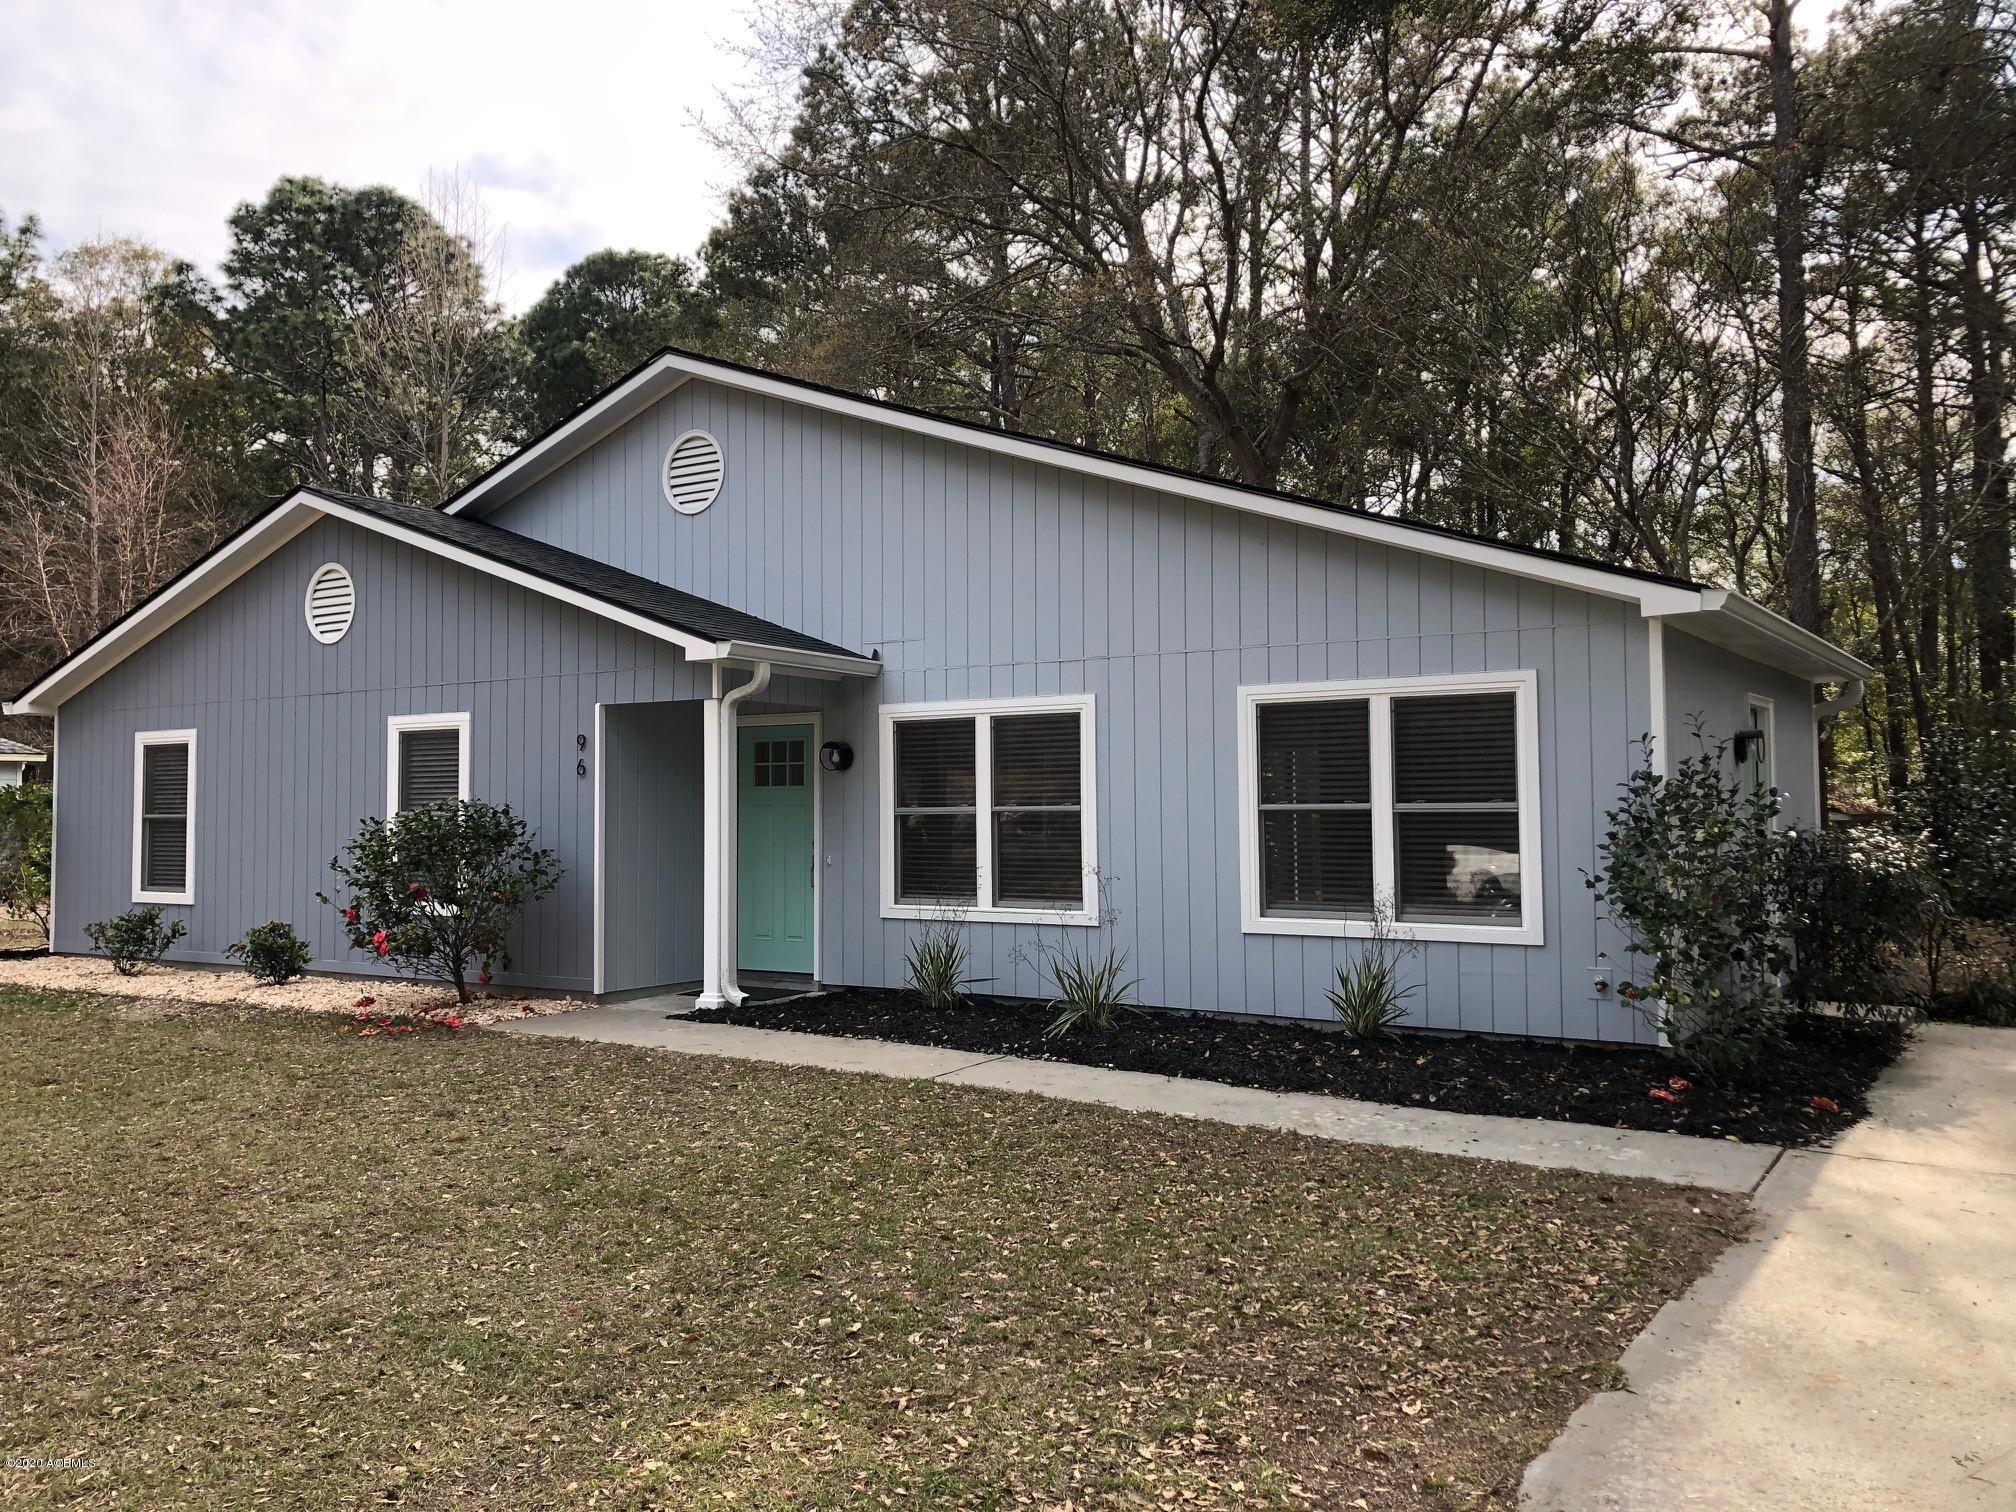 Photo of 96 Francis Marion Circle, Beaufort, SC 29907